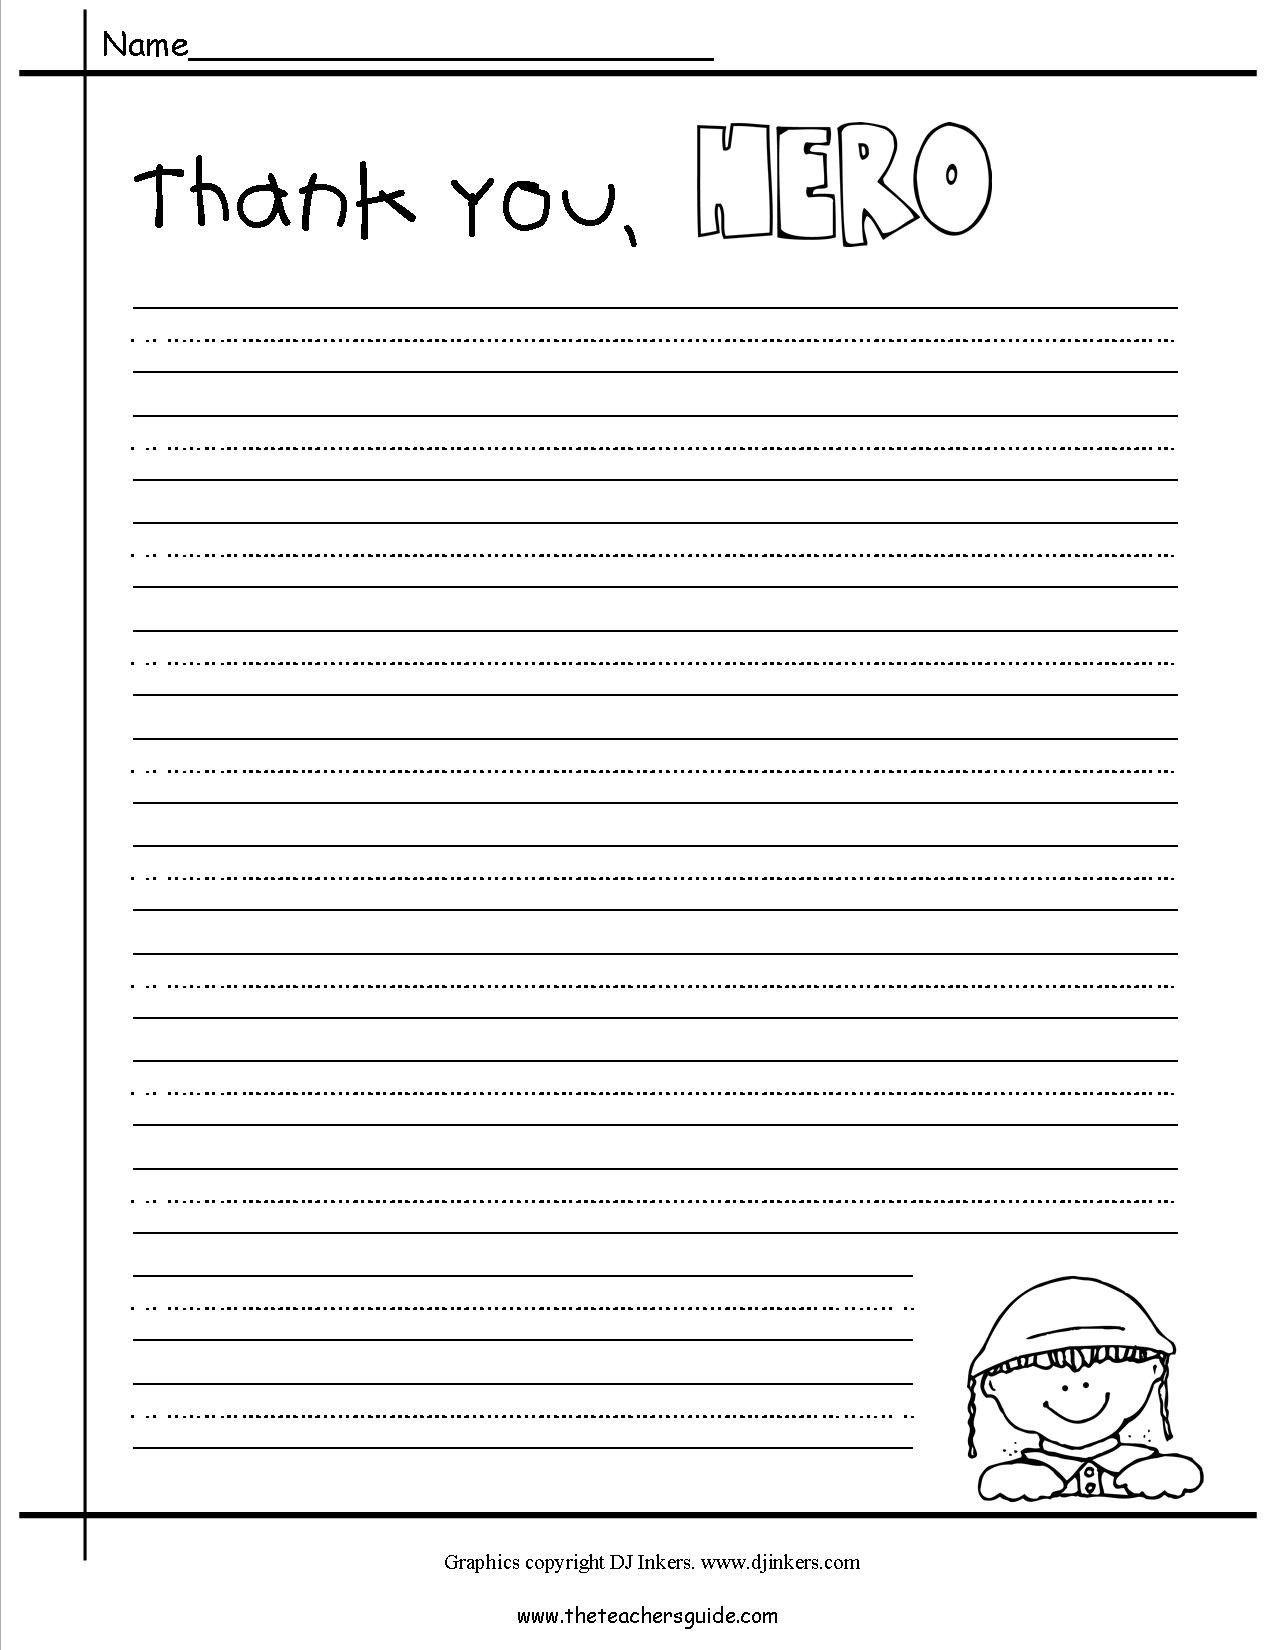 Veterans Day Letter Template - Veterans Day Thank You Letter Template